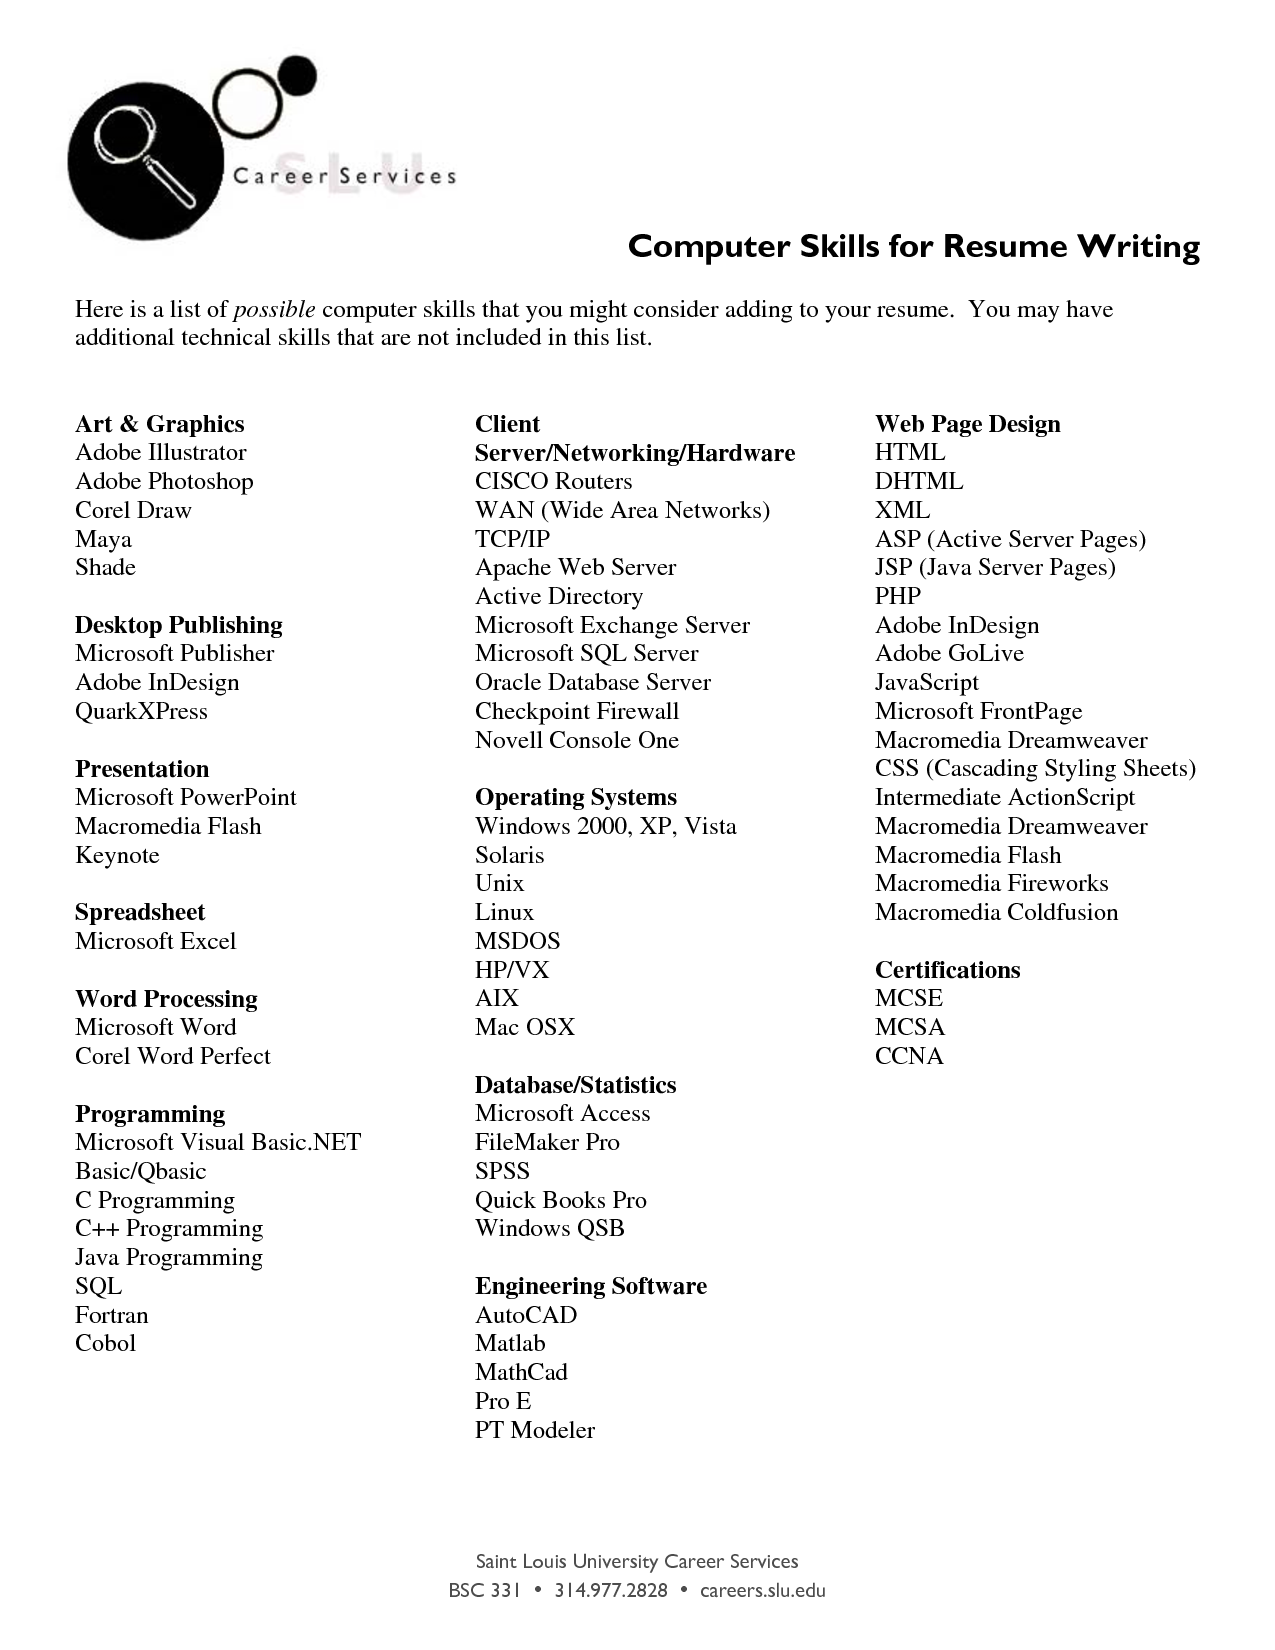 List Of Computer Skills For Resume Entrancing Pinmaria Johnson On Work  Resumes And Cover Letters  Pinterest